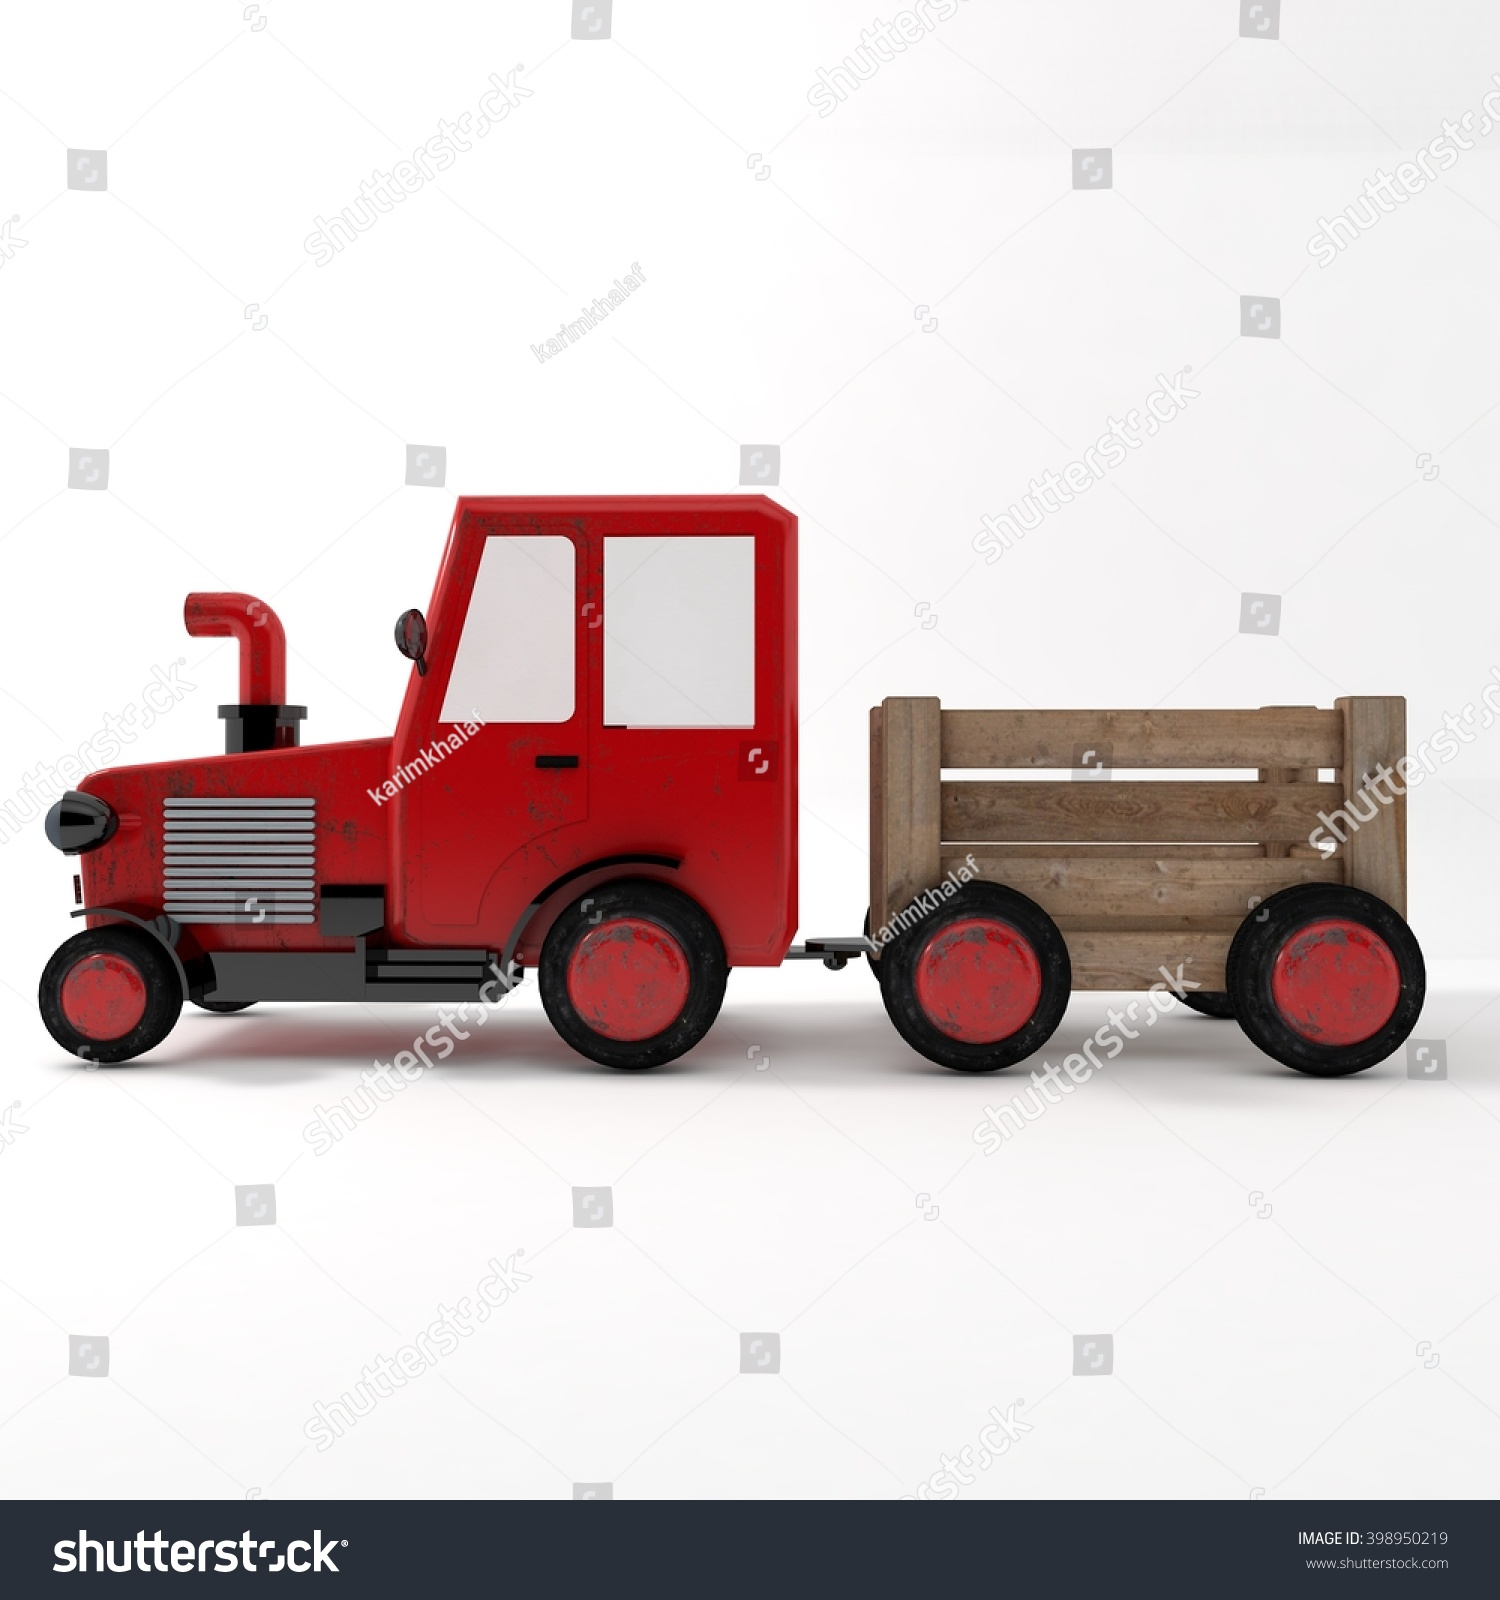 Side Picture Of Tractor : D tractor side stock illustration shutterstock